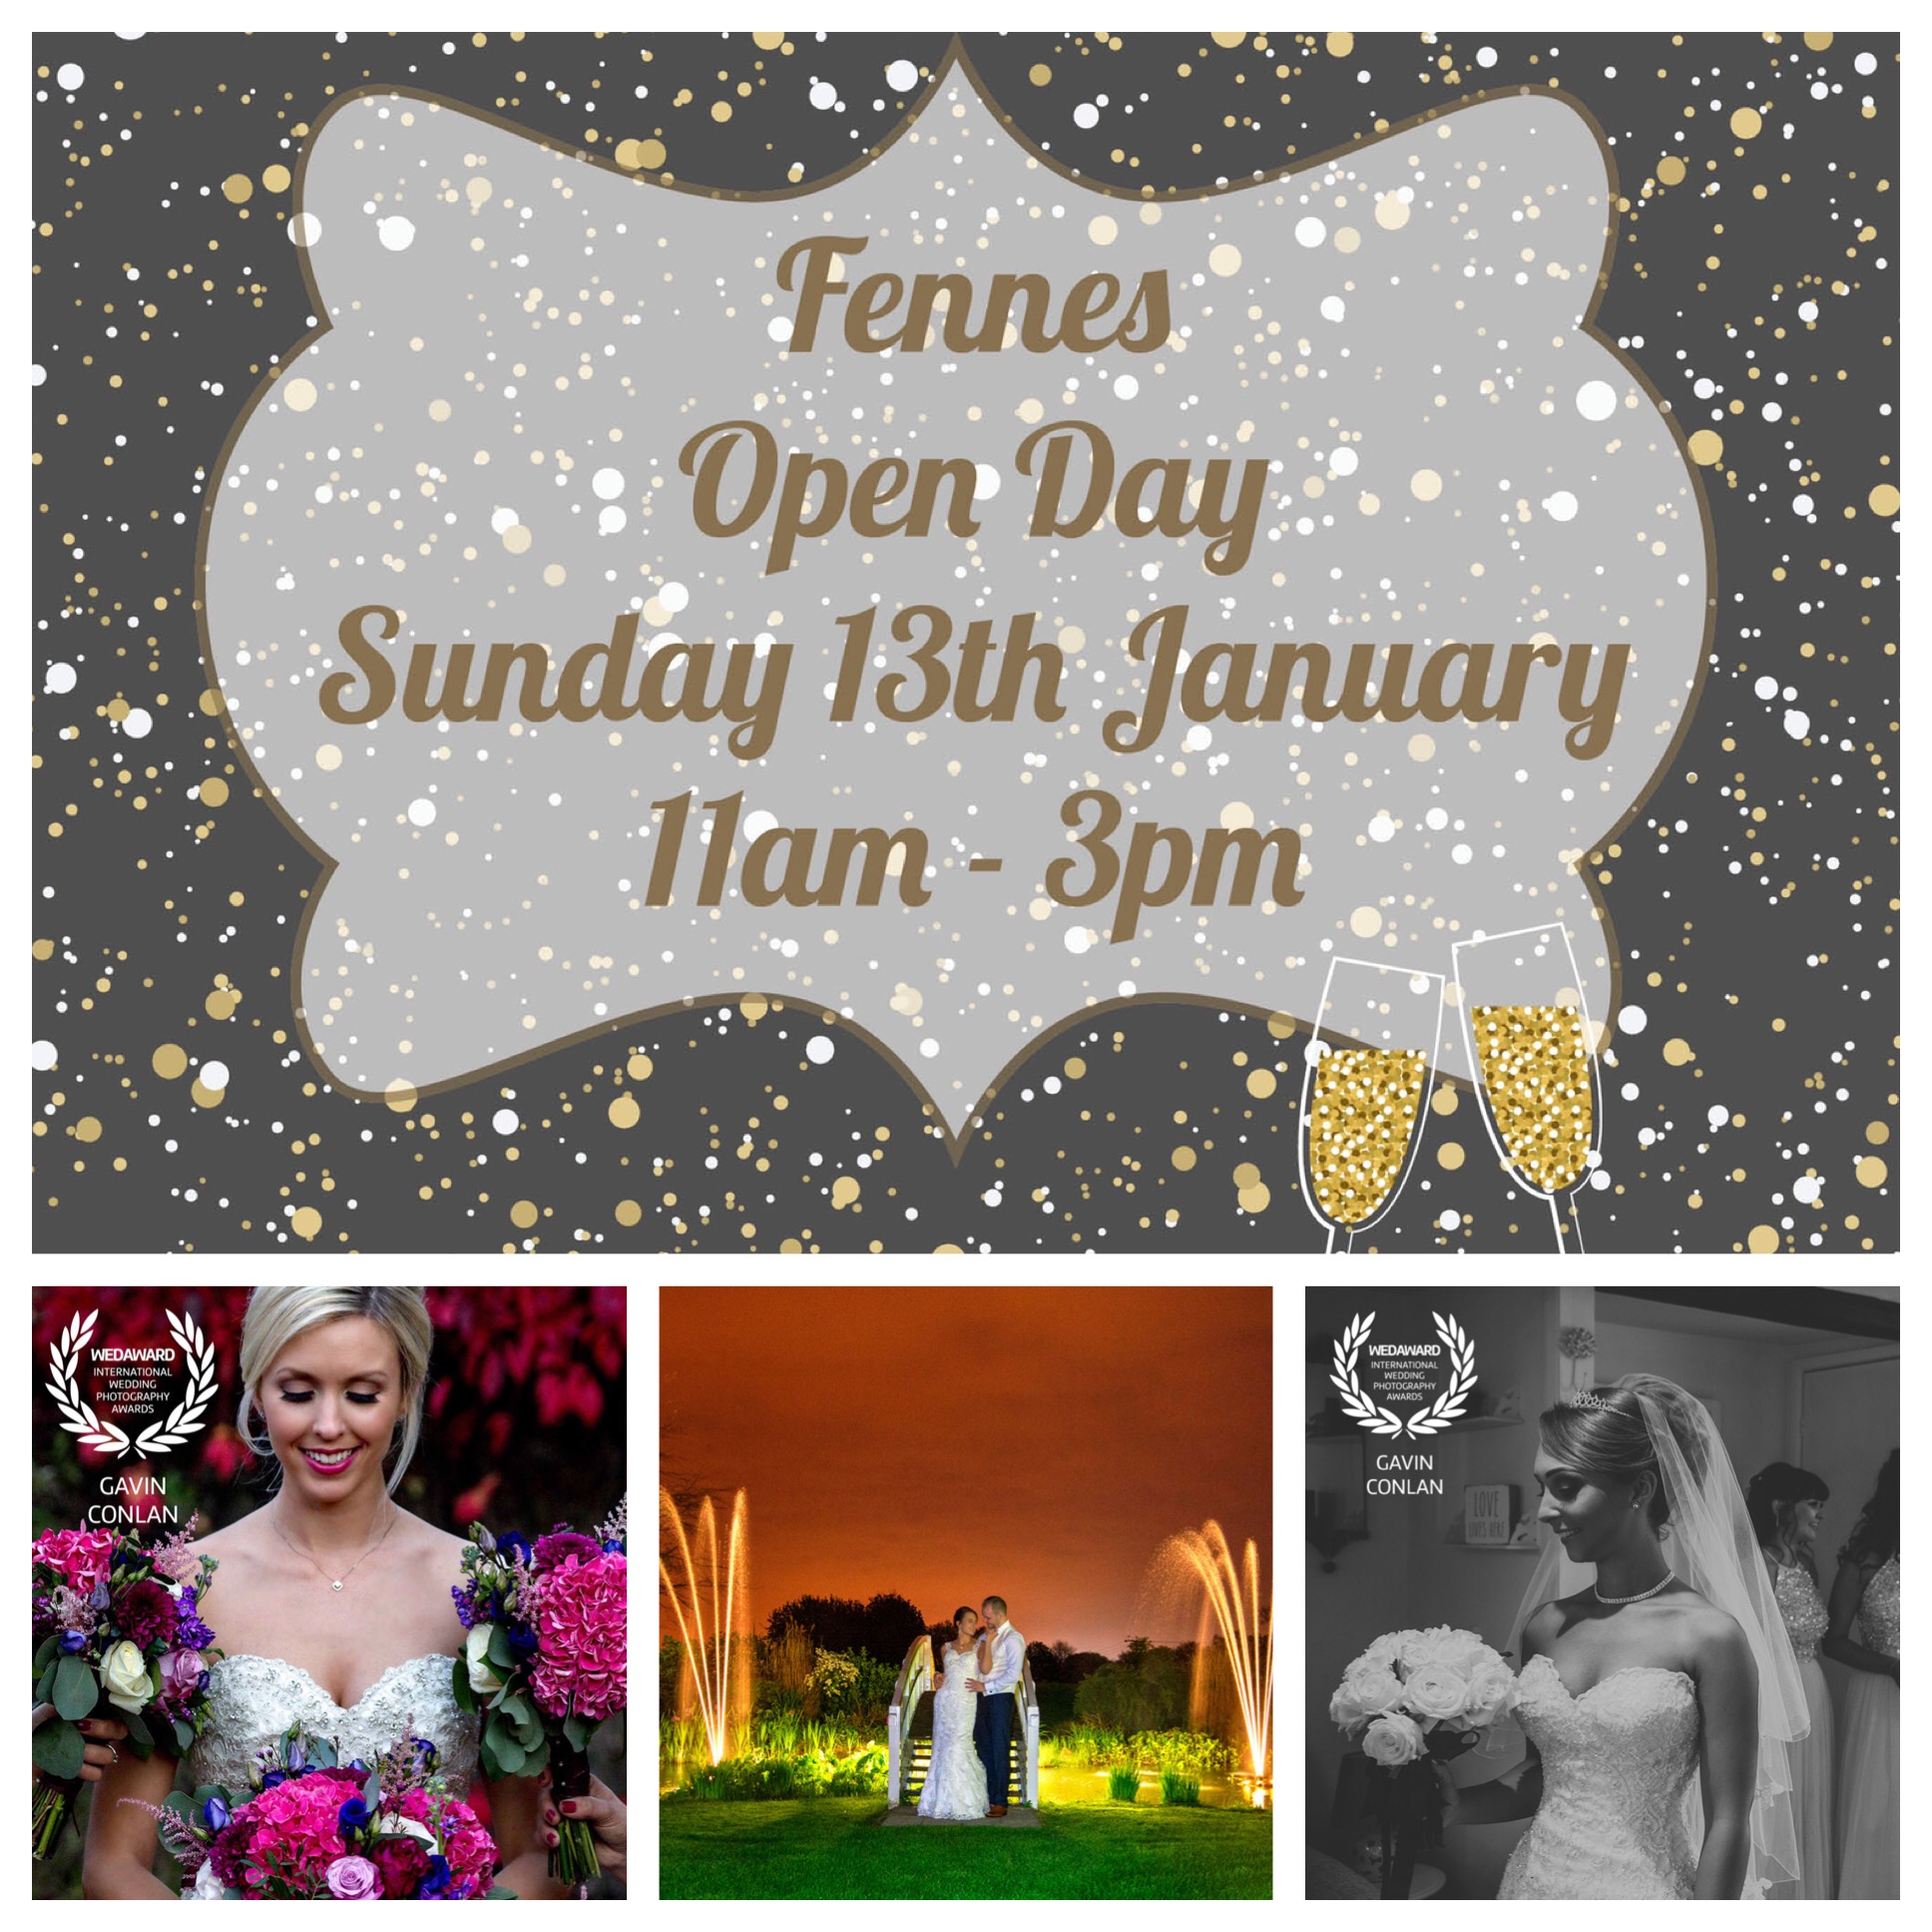 The Fennes Wedding Open Day